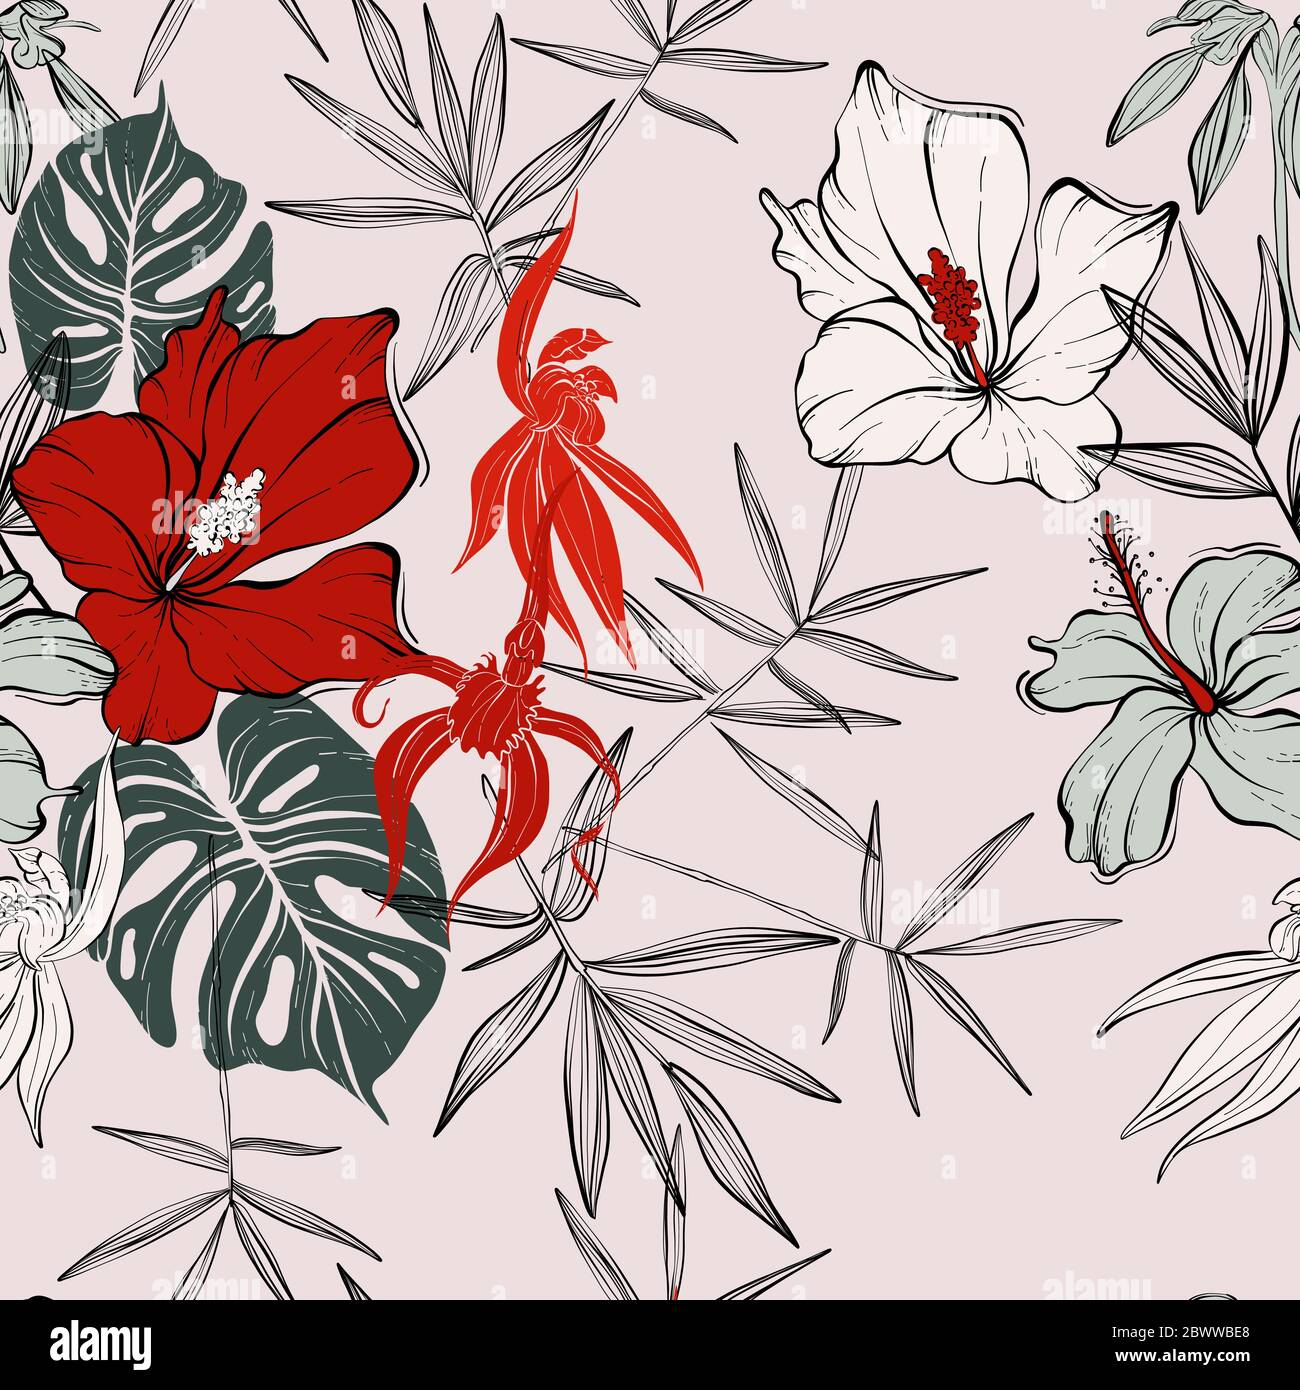 Flower Seamless Pattern Floral Monstera Hibiscus Vector Background In Red Pink Greeen Colors Abstract Line Art Illustration Vintage Plants Summe Stock Vector Image Art Alamy